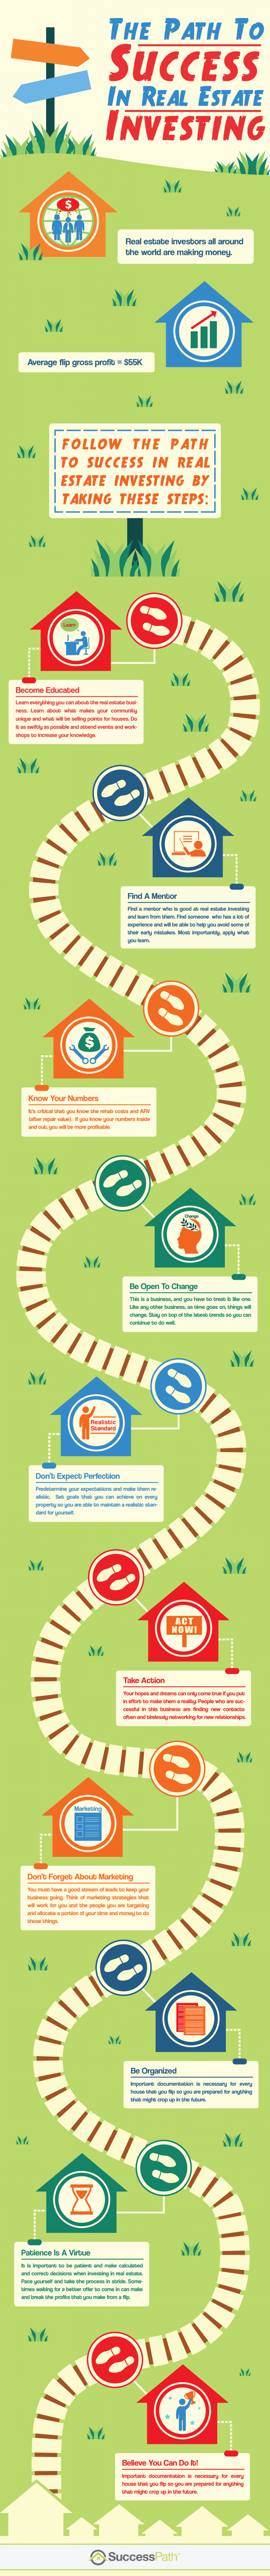 The Path To Success In Real Estate Investing Infographic